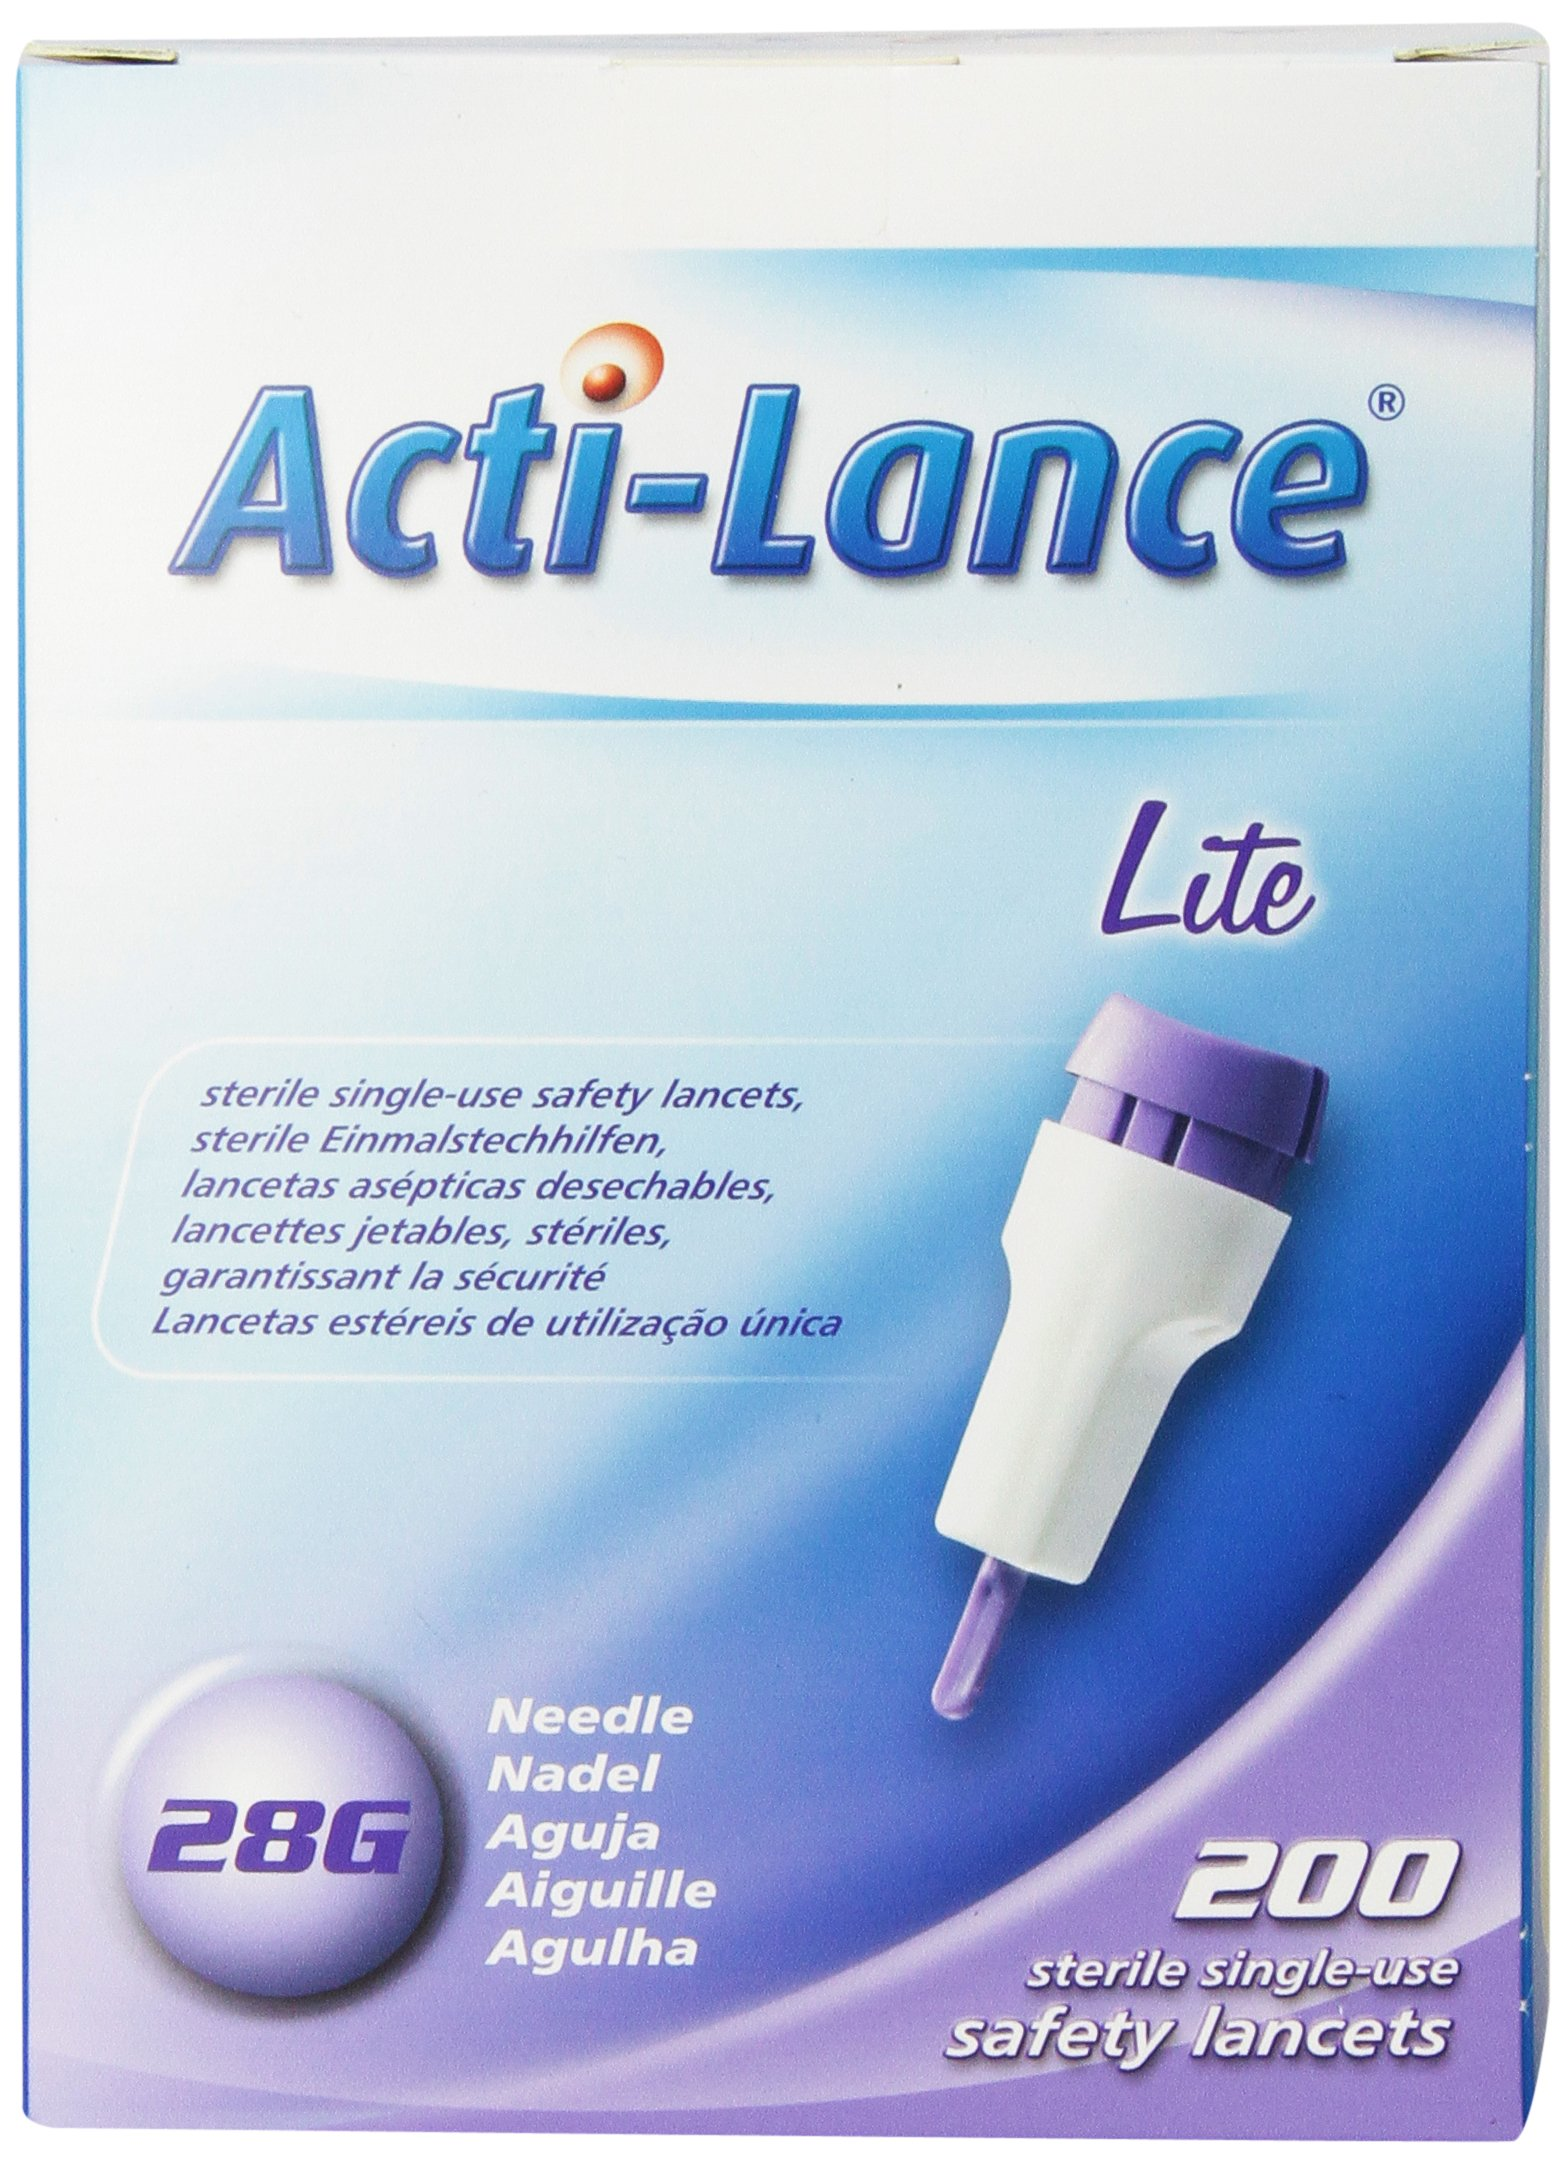 Acti-Lance Lite Single Use Lancets, 200 Count